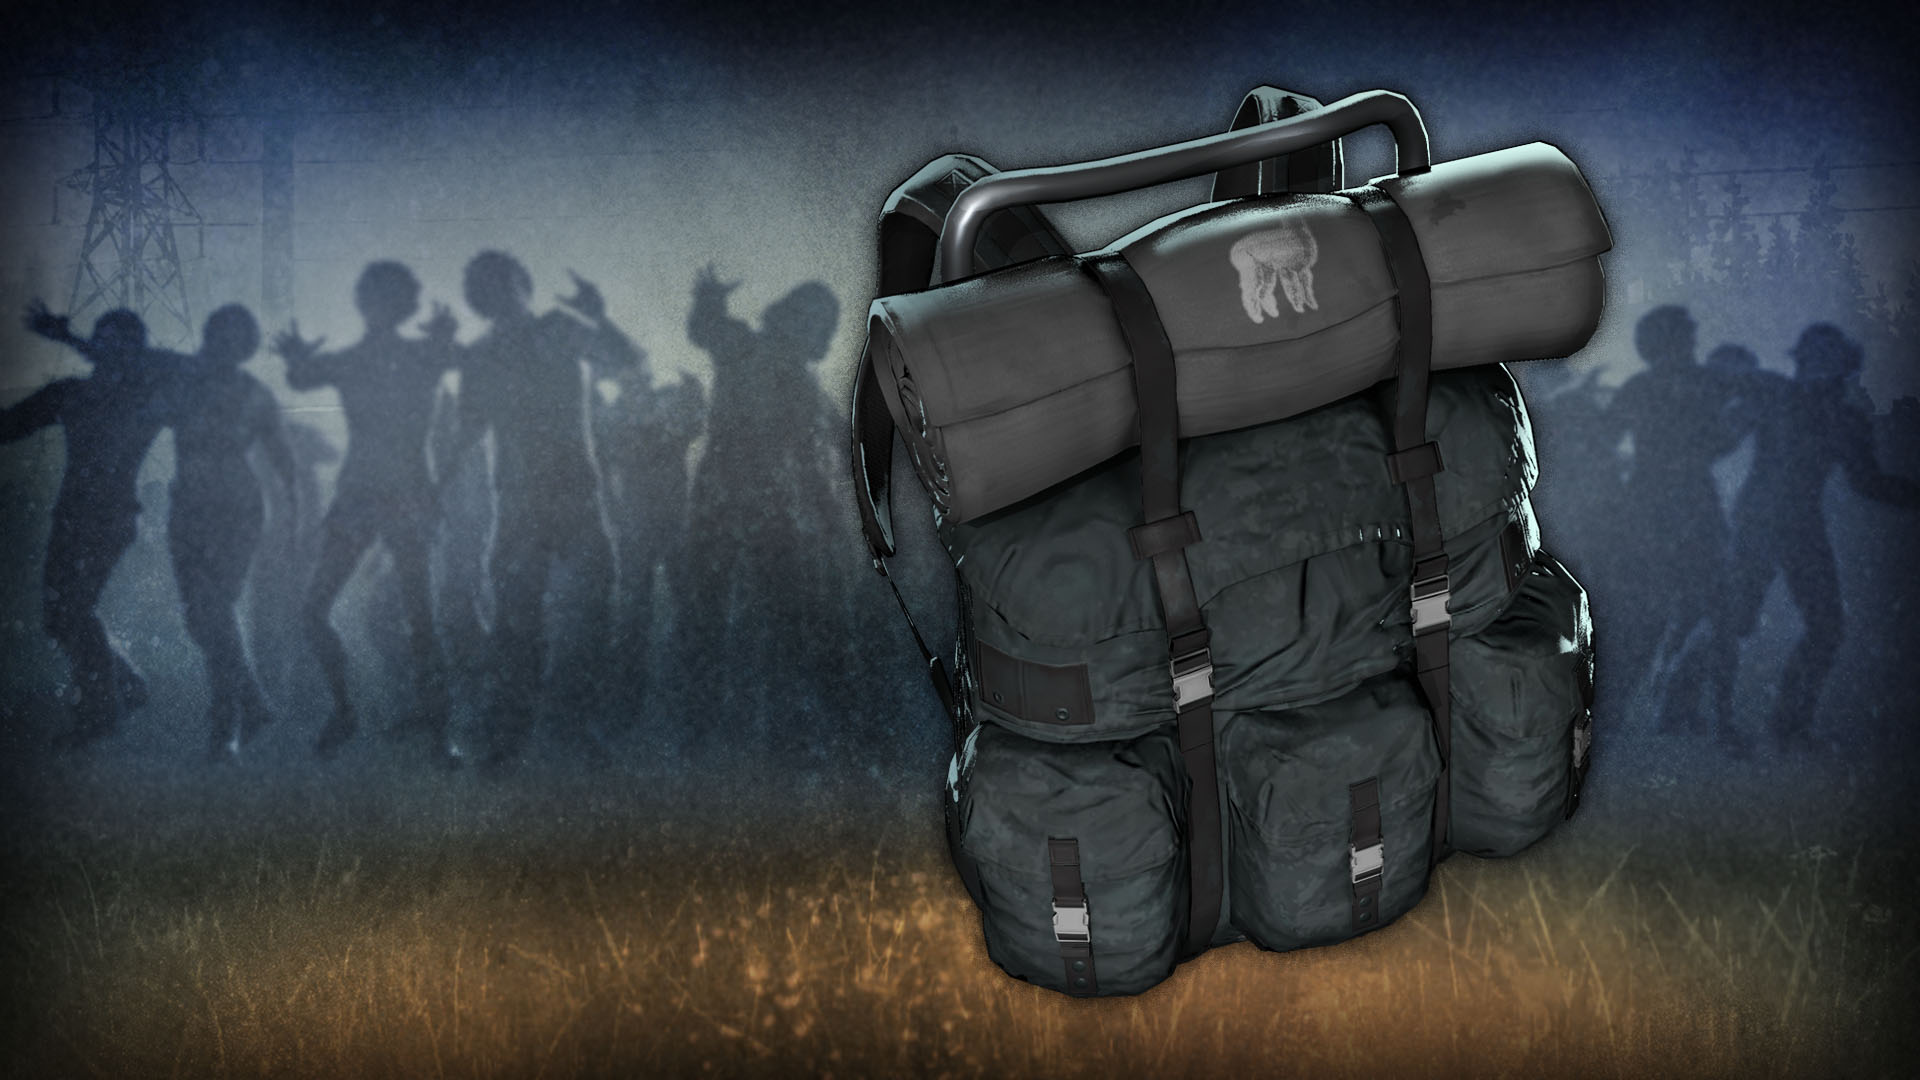 Backpack Skins H1Z1 h1z1: just survive free dlc features alpaca backpack, fans